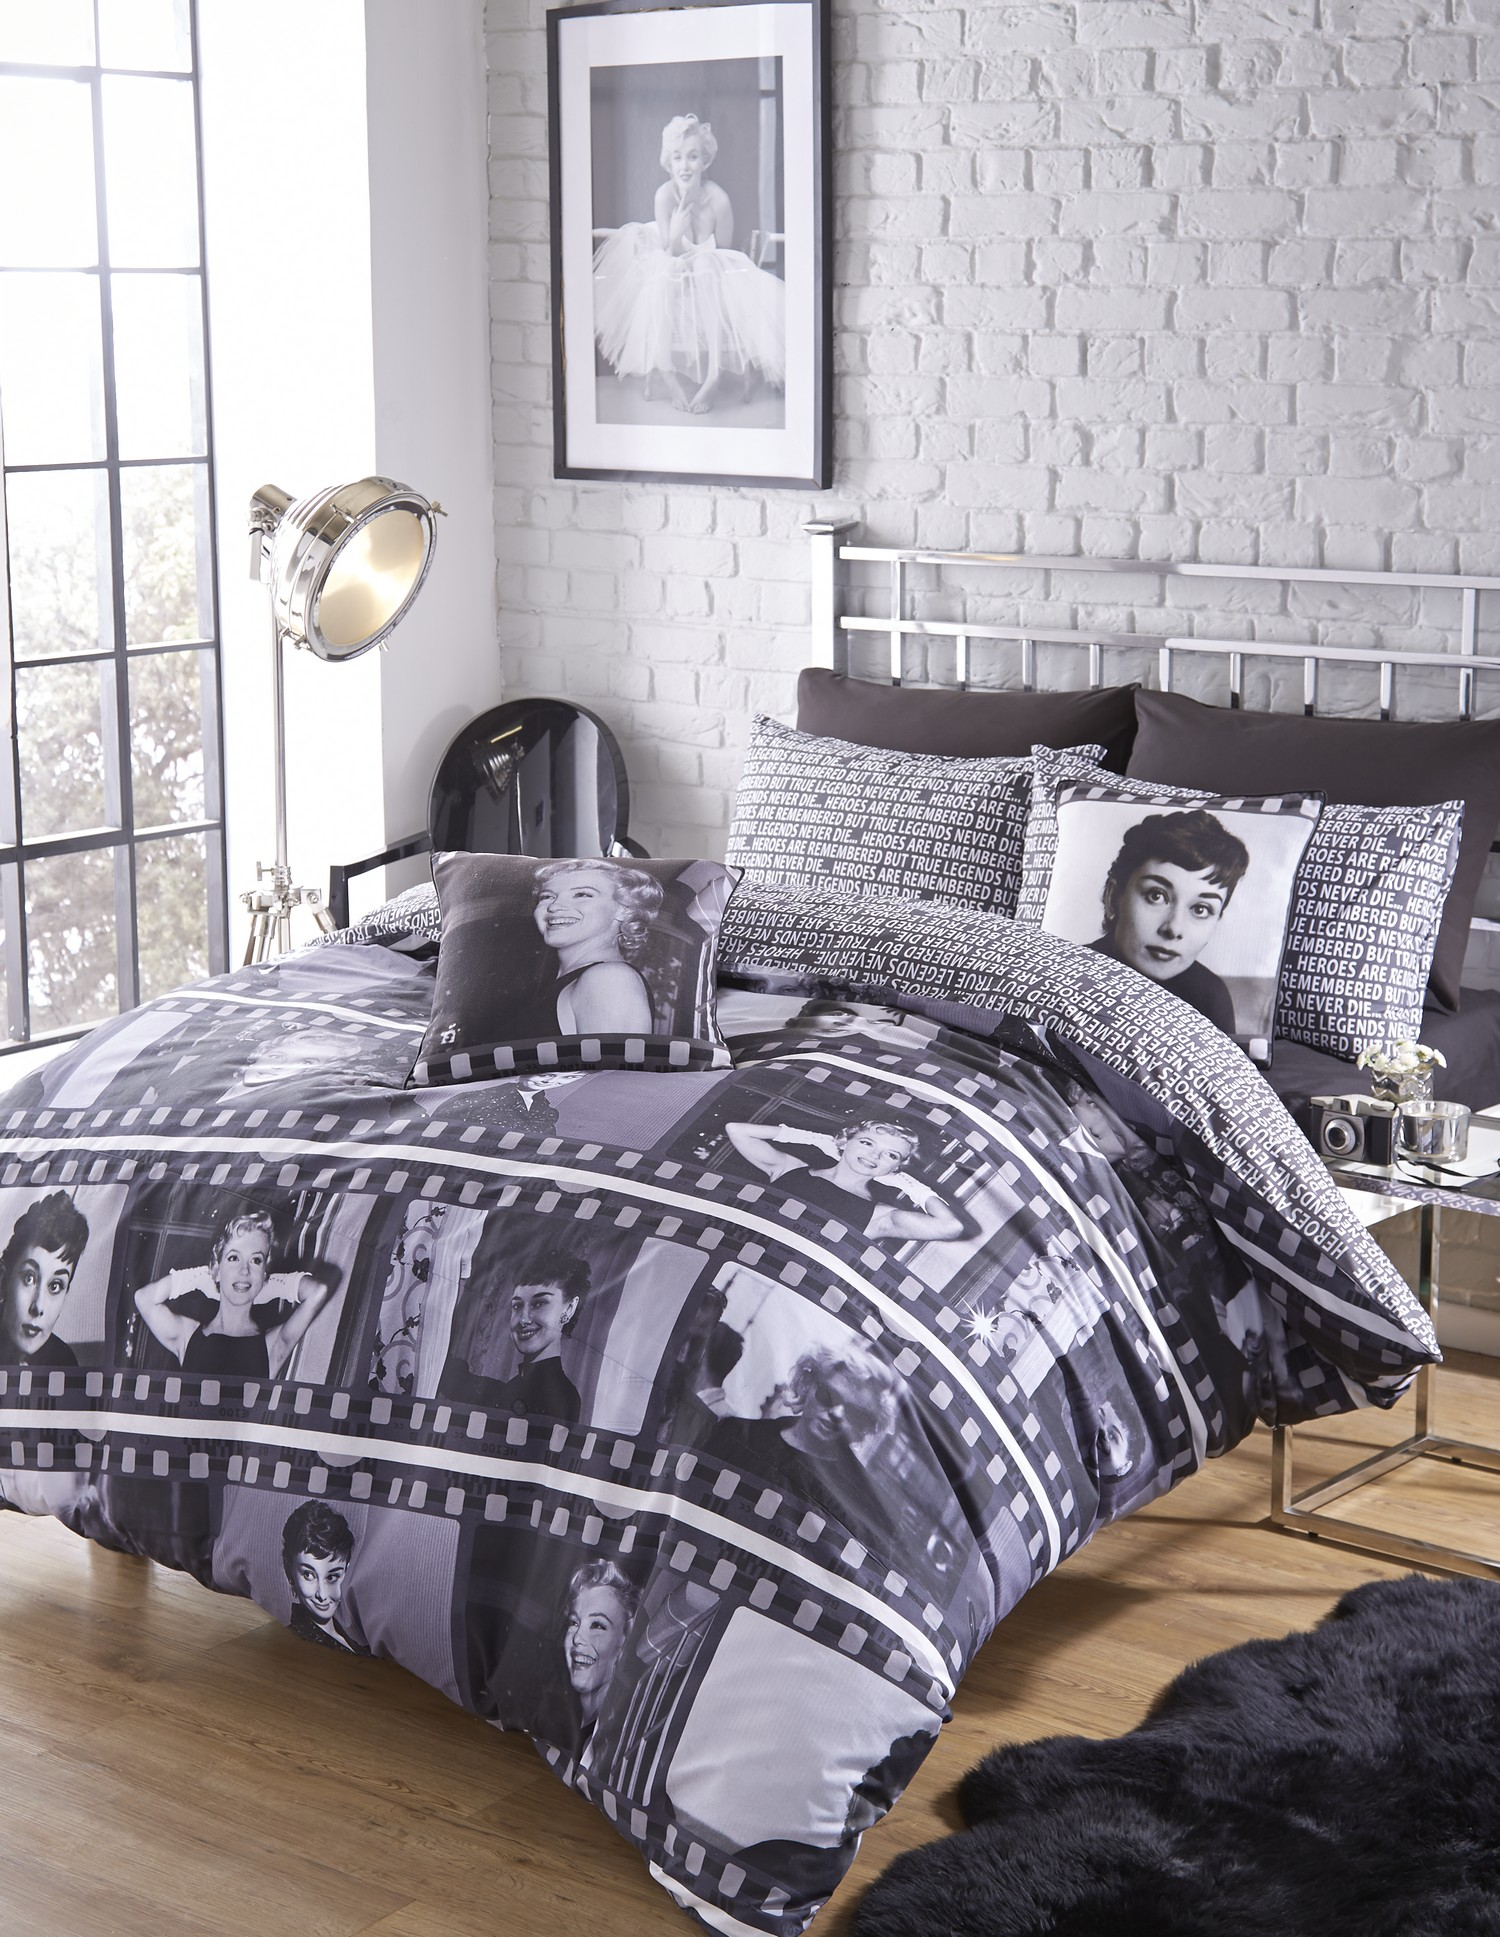 Marilyn Monroe Audrey Hepburn Duvet Quilt Cover Bedding Bed Set Bedlinen Movie Ebay